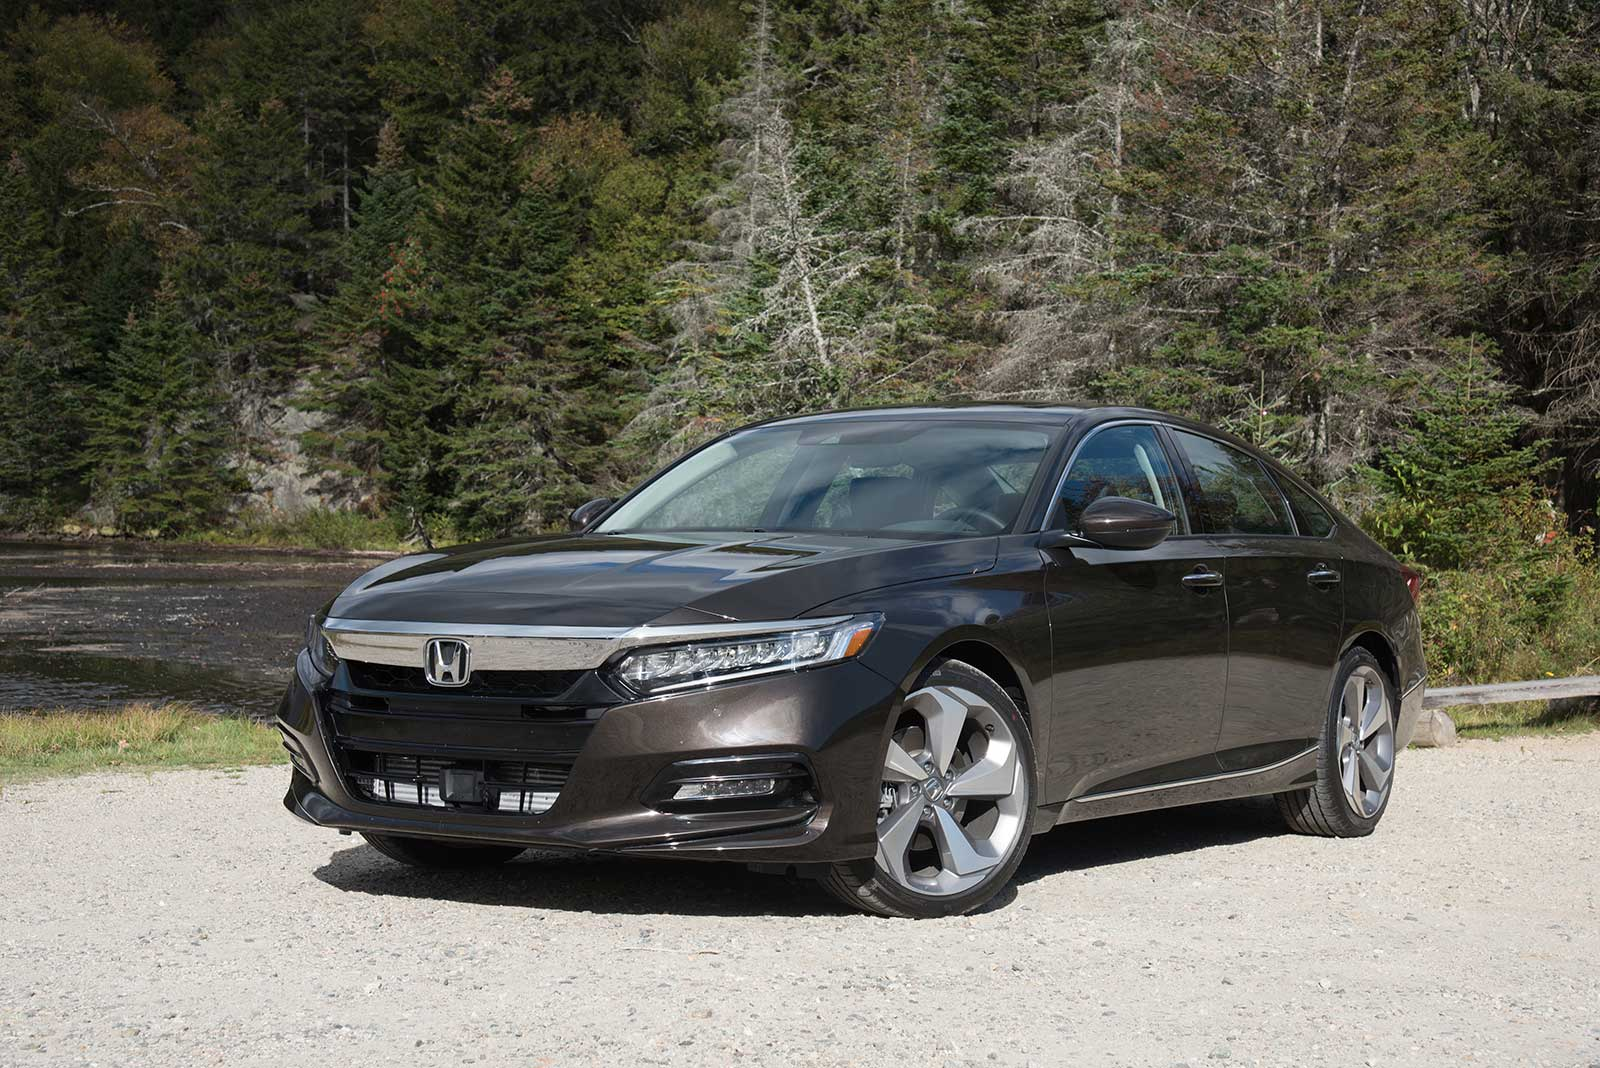 2018 Honda Accord 2.0 Turbo Touring Main Art ...